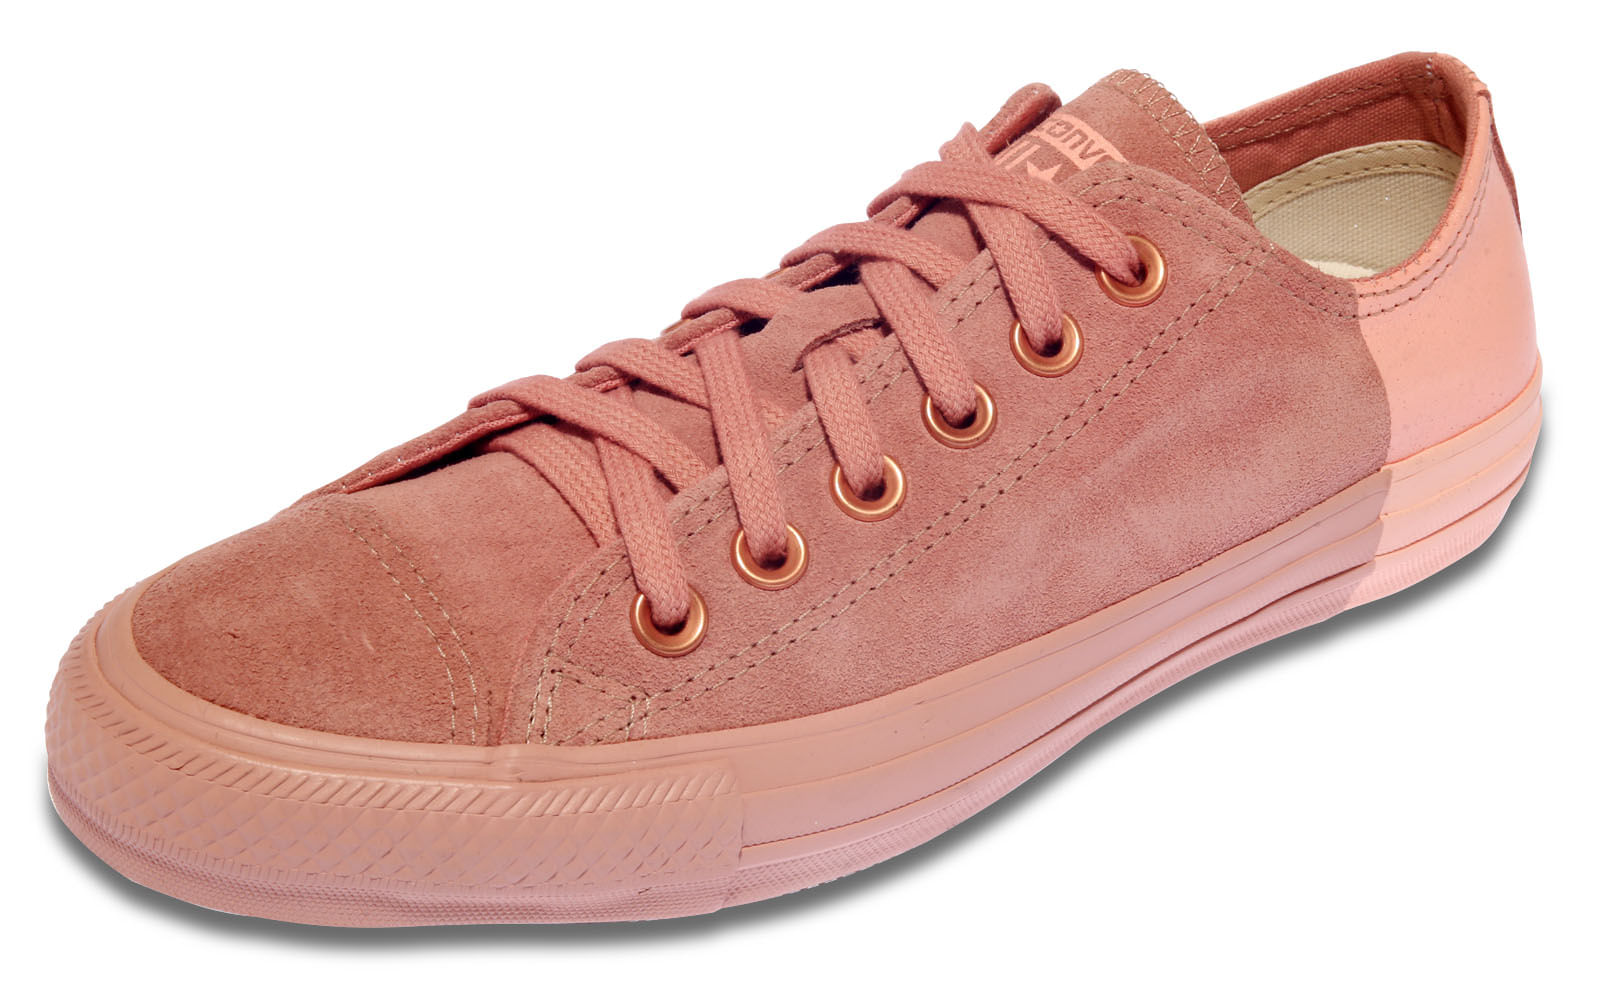 Tenis Converse Chuck Taylor All Star Rosa - theboxproject d7cbc34a4fdf0